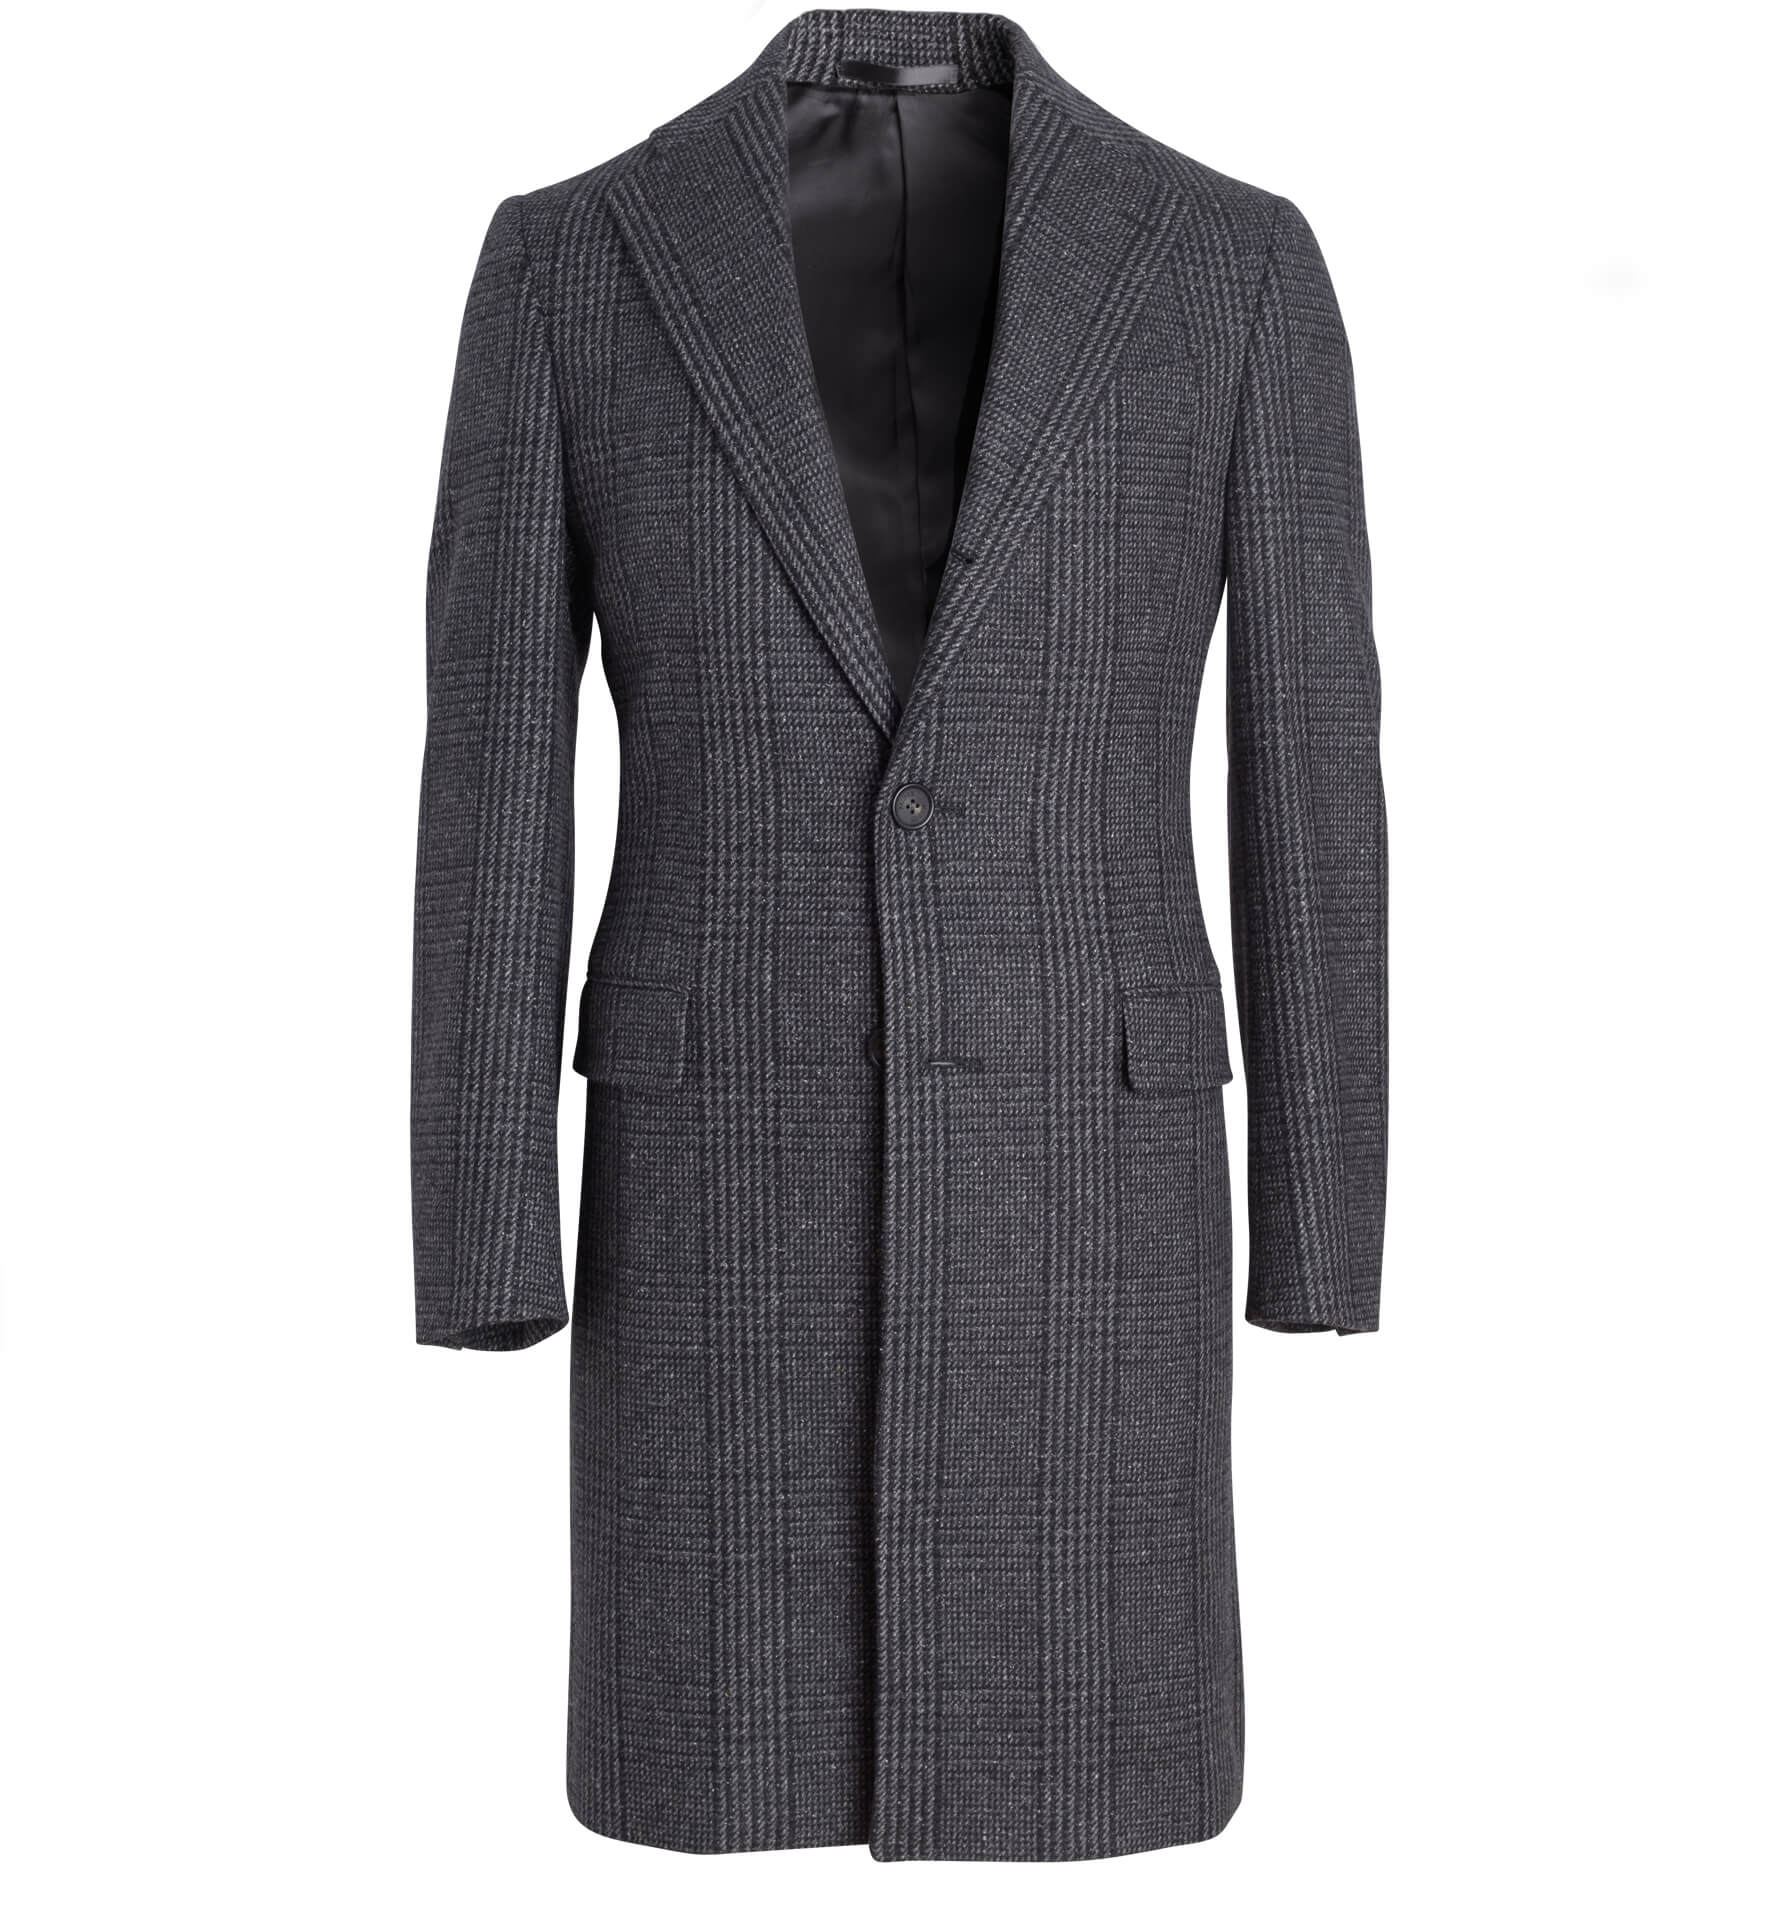 Zoom Image of Bleecker Grey Wool Glen Plaid Coat